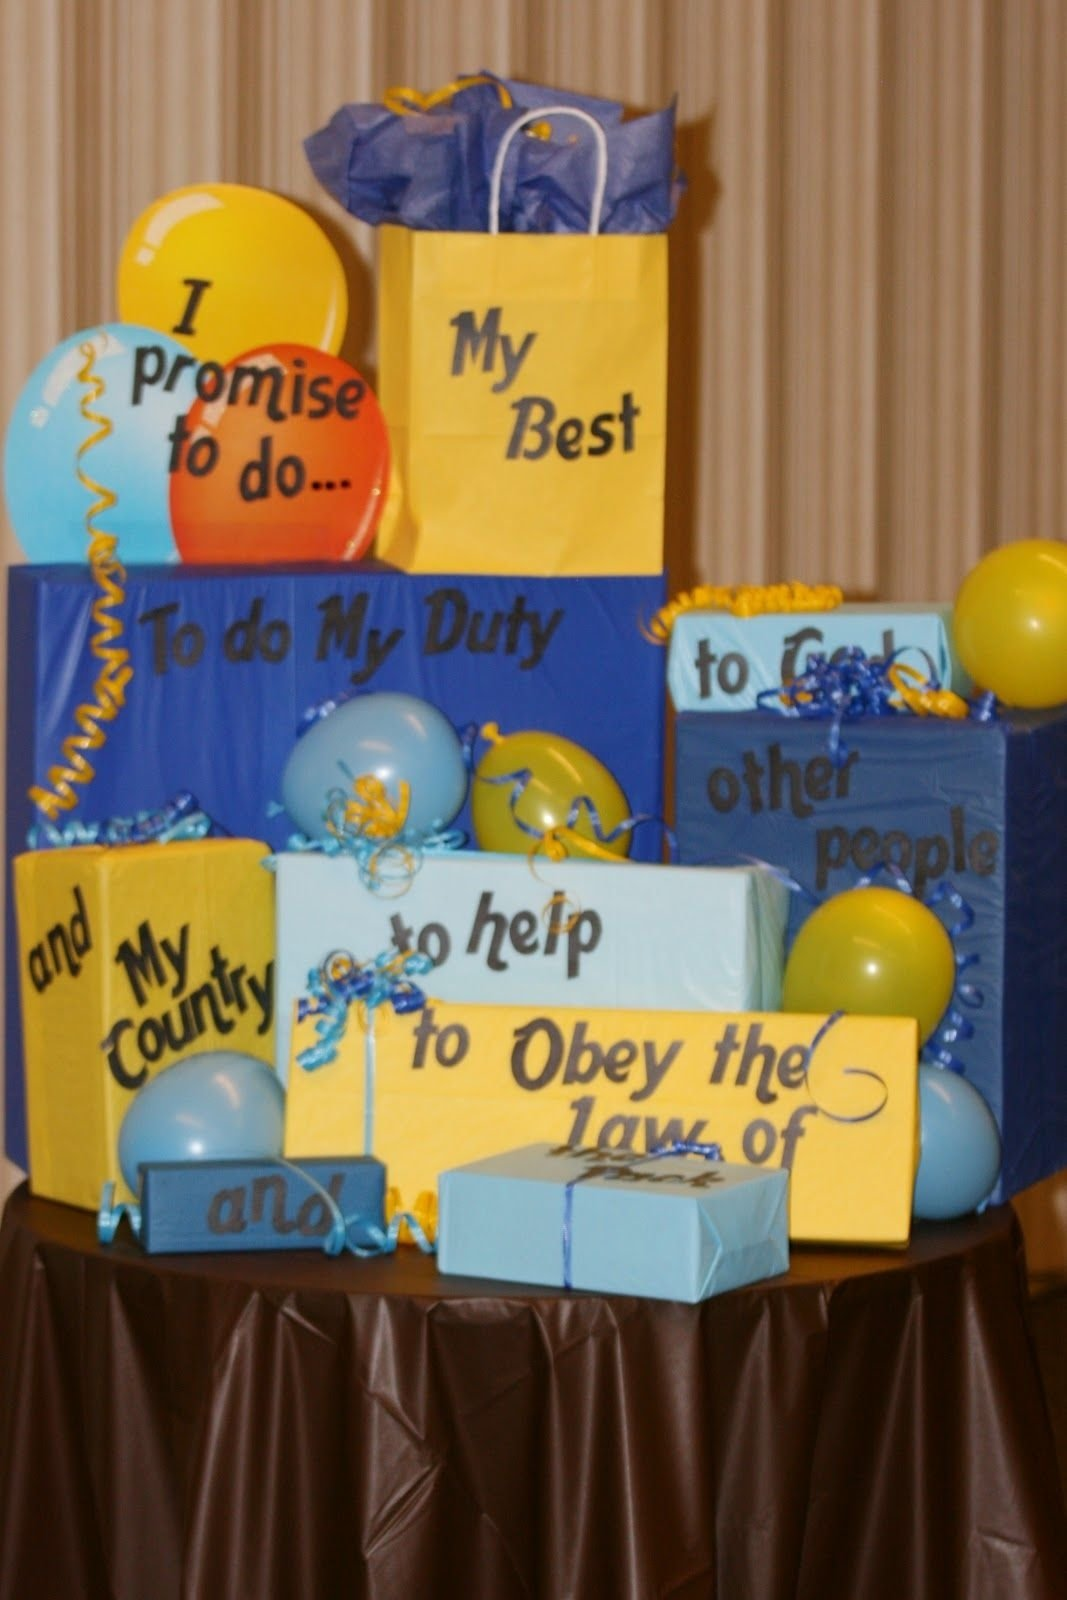 10 Stylish Cub Scout Blue And Gold Banquet Ideas blue and gold banquet ideas cub masternow what blue and gold 1 2020